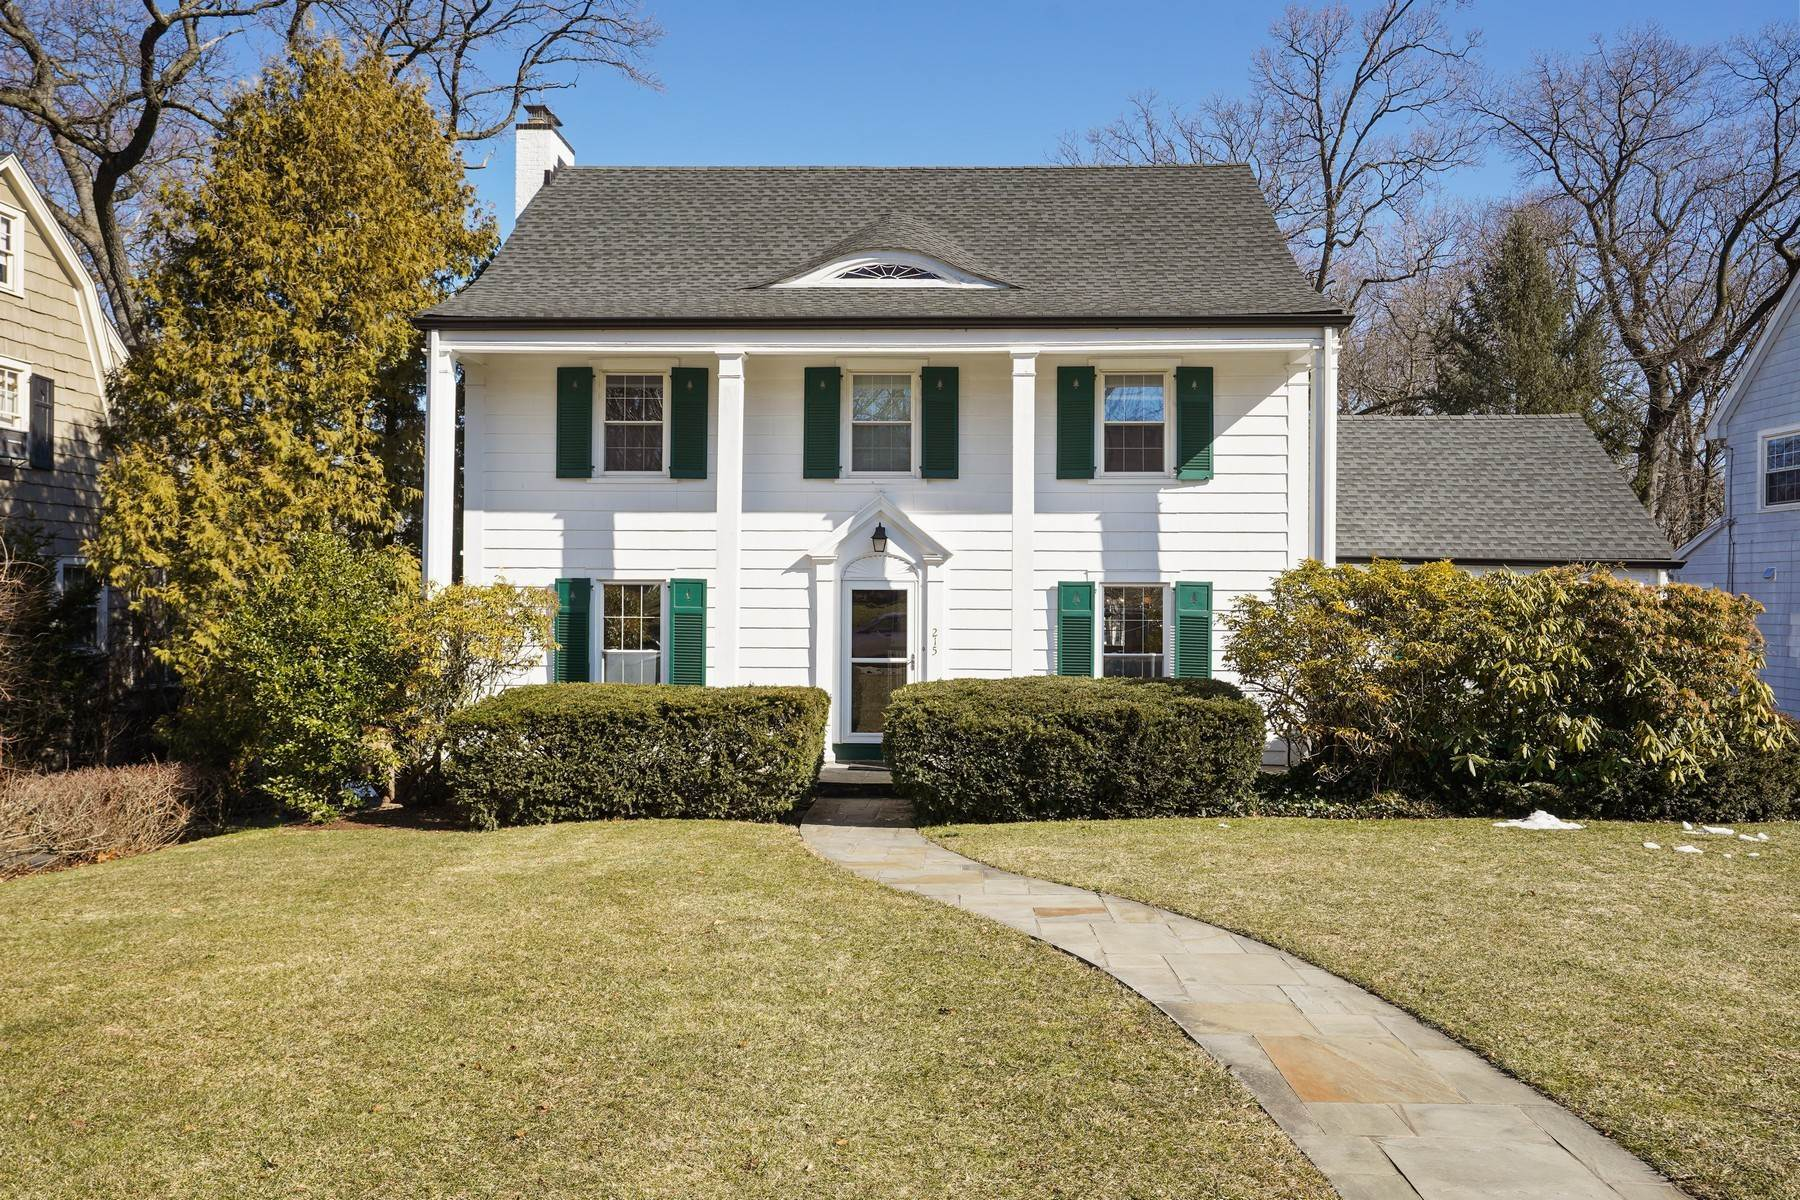 Single Family Homes for Sale at Perfect In Every Way! 215 Forest Avenue Glen Ridge, New Jersey 07028 United States